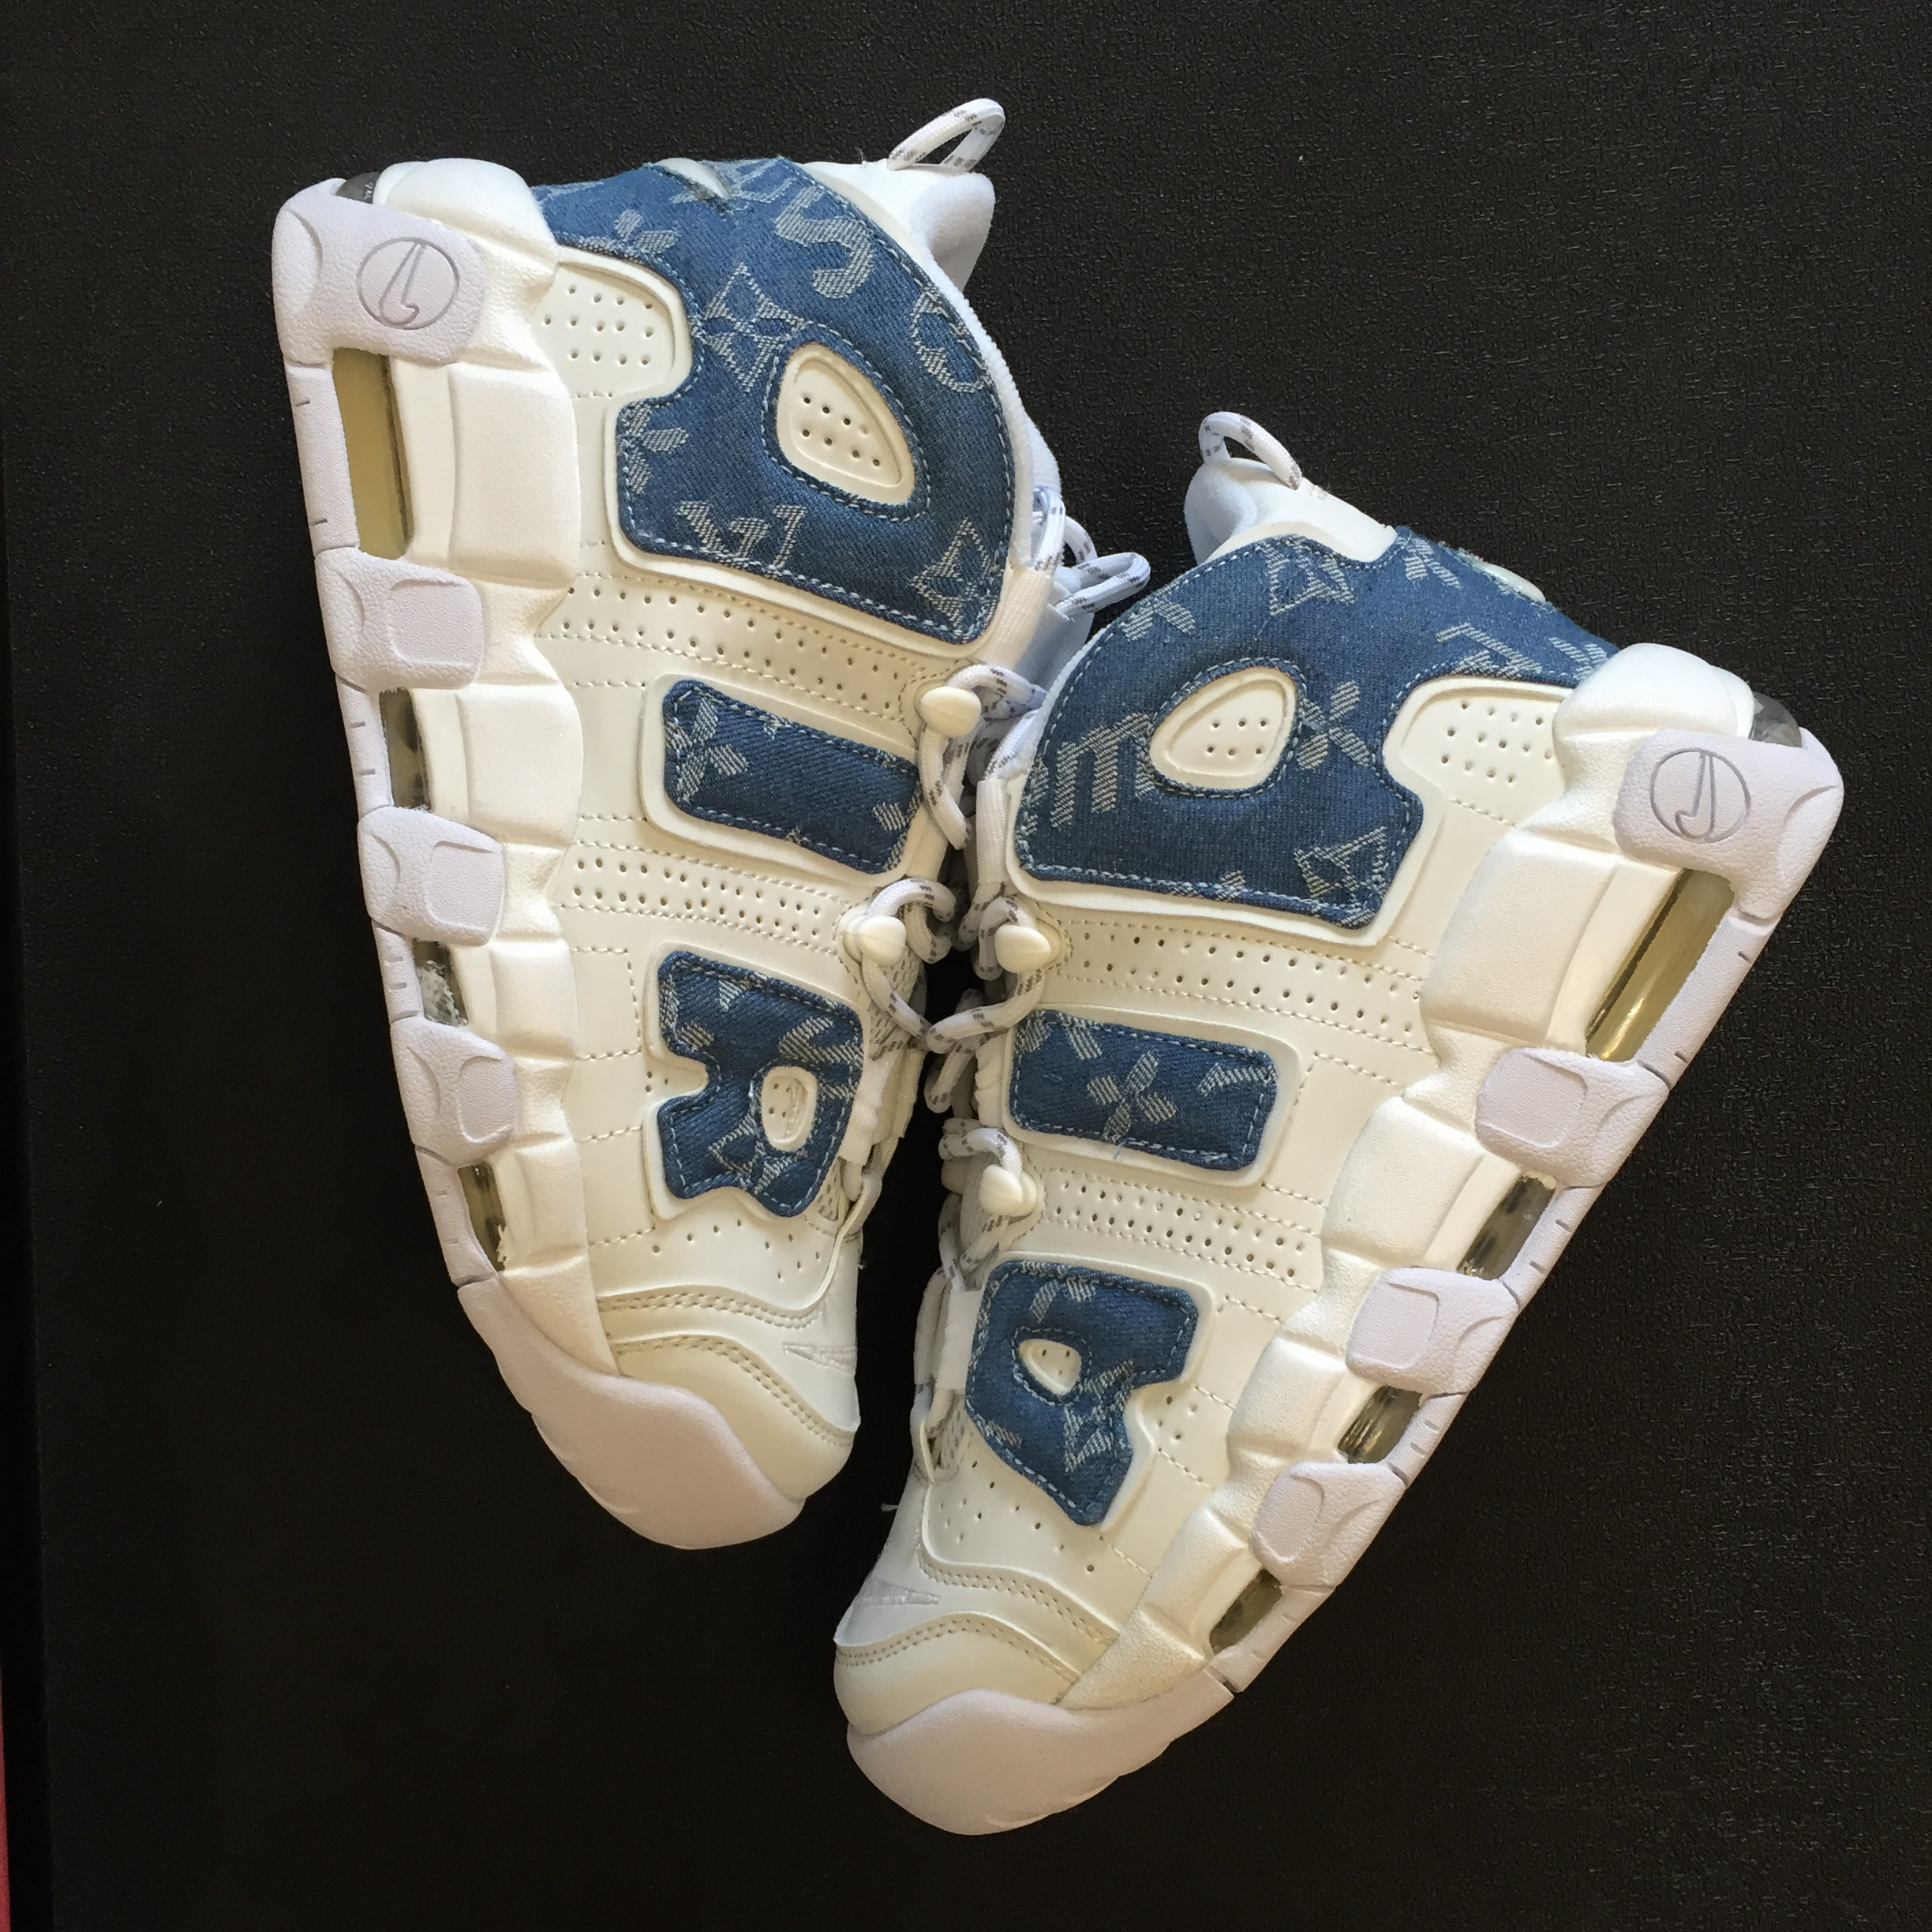 Louis vuitton x Supreme x Nike Air More Uptempo White Blue Shoes